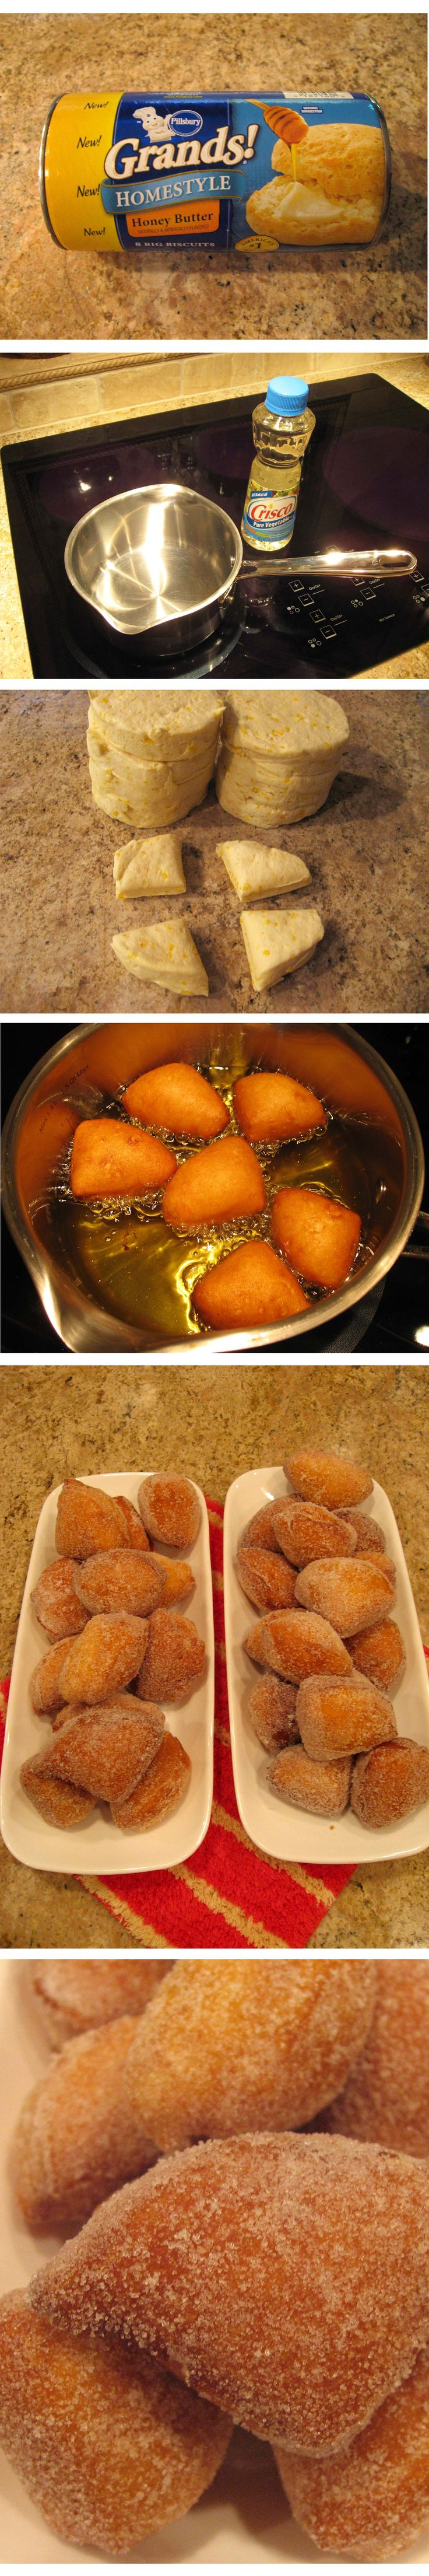 Easy Biscuit Doughnuts - Cut biscuits into quarters, drop in 200 - 240° oil for a couple of minutes (flip halfway), cool sightly on paper towel, roll in sugar, brown sugar, powdered sugar, ENJOY - best fresh